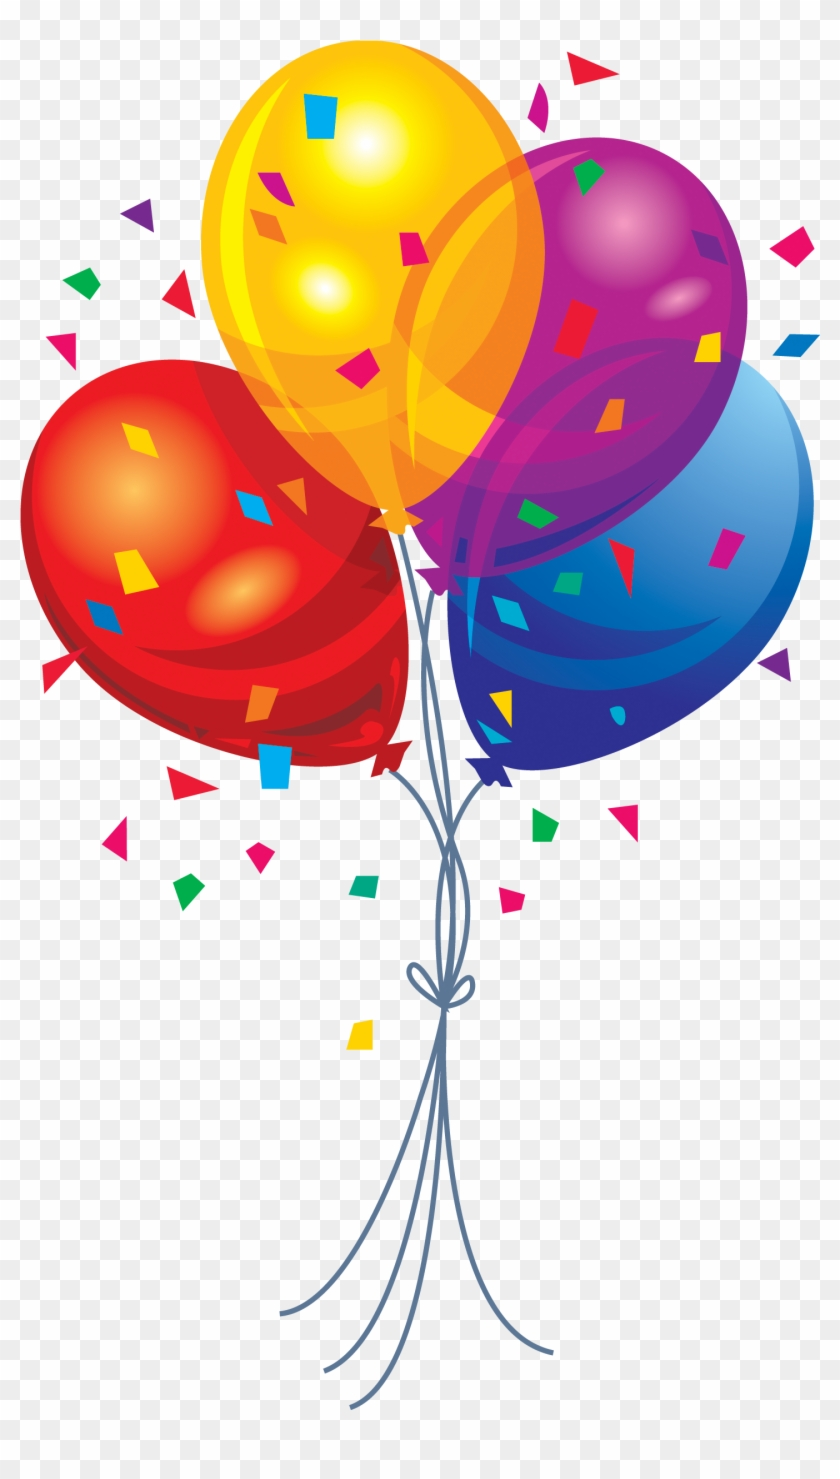 Happy Birthday Balloons Clipart - Birthday Balloons Png #89472